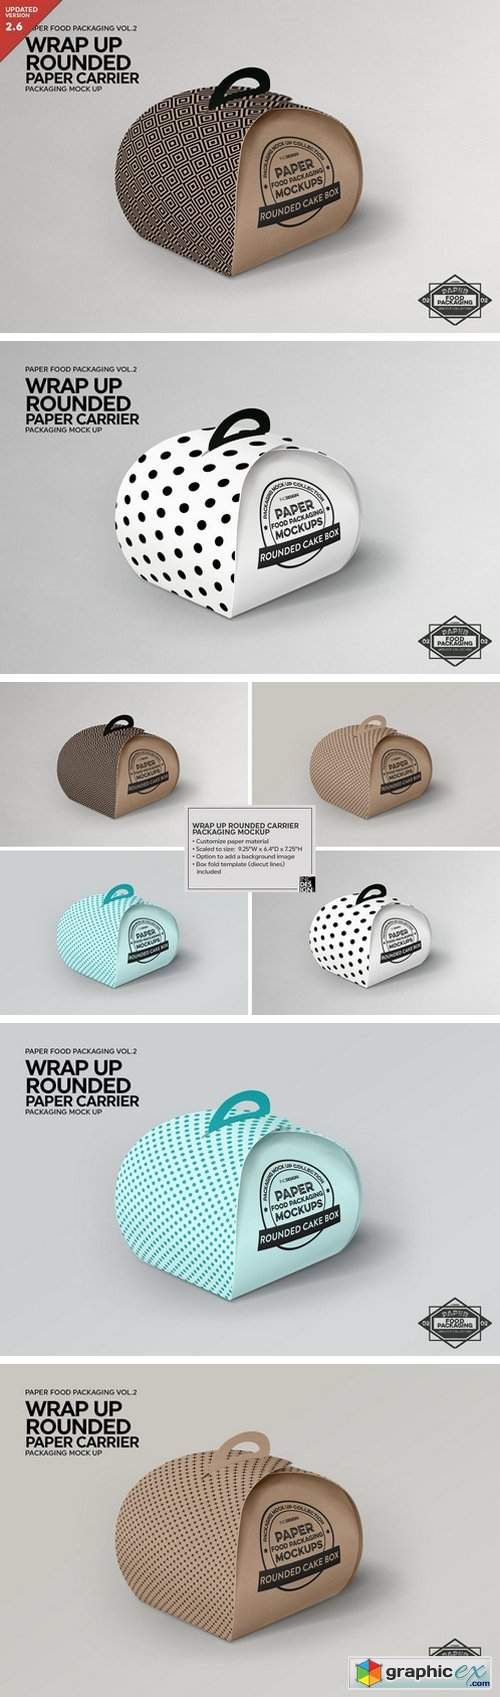 WrapUp Cake Carrier Packaging Mockup